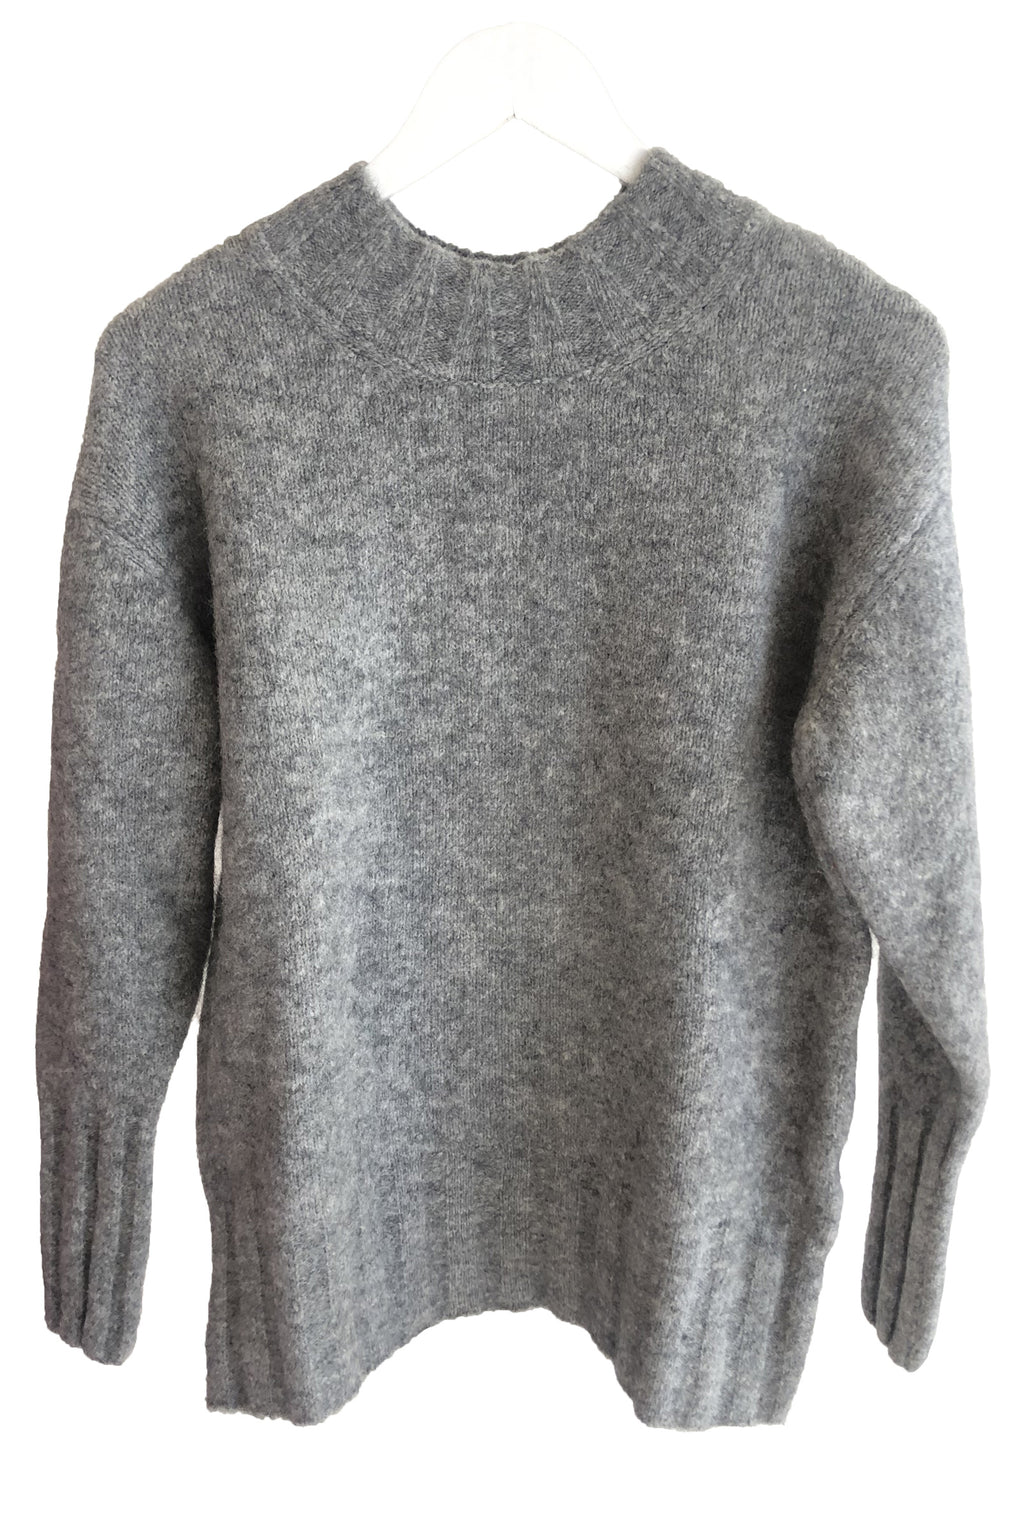 Paloma Wool Rodriguez Warm Oversized Sweater in Mid Grey